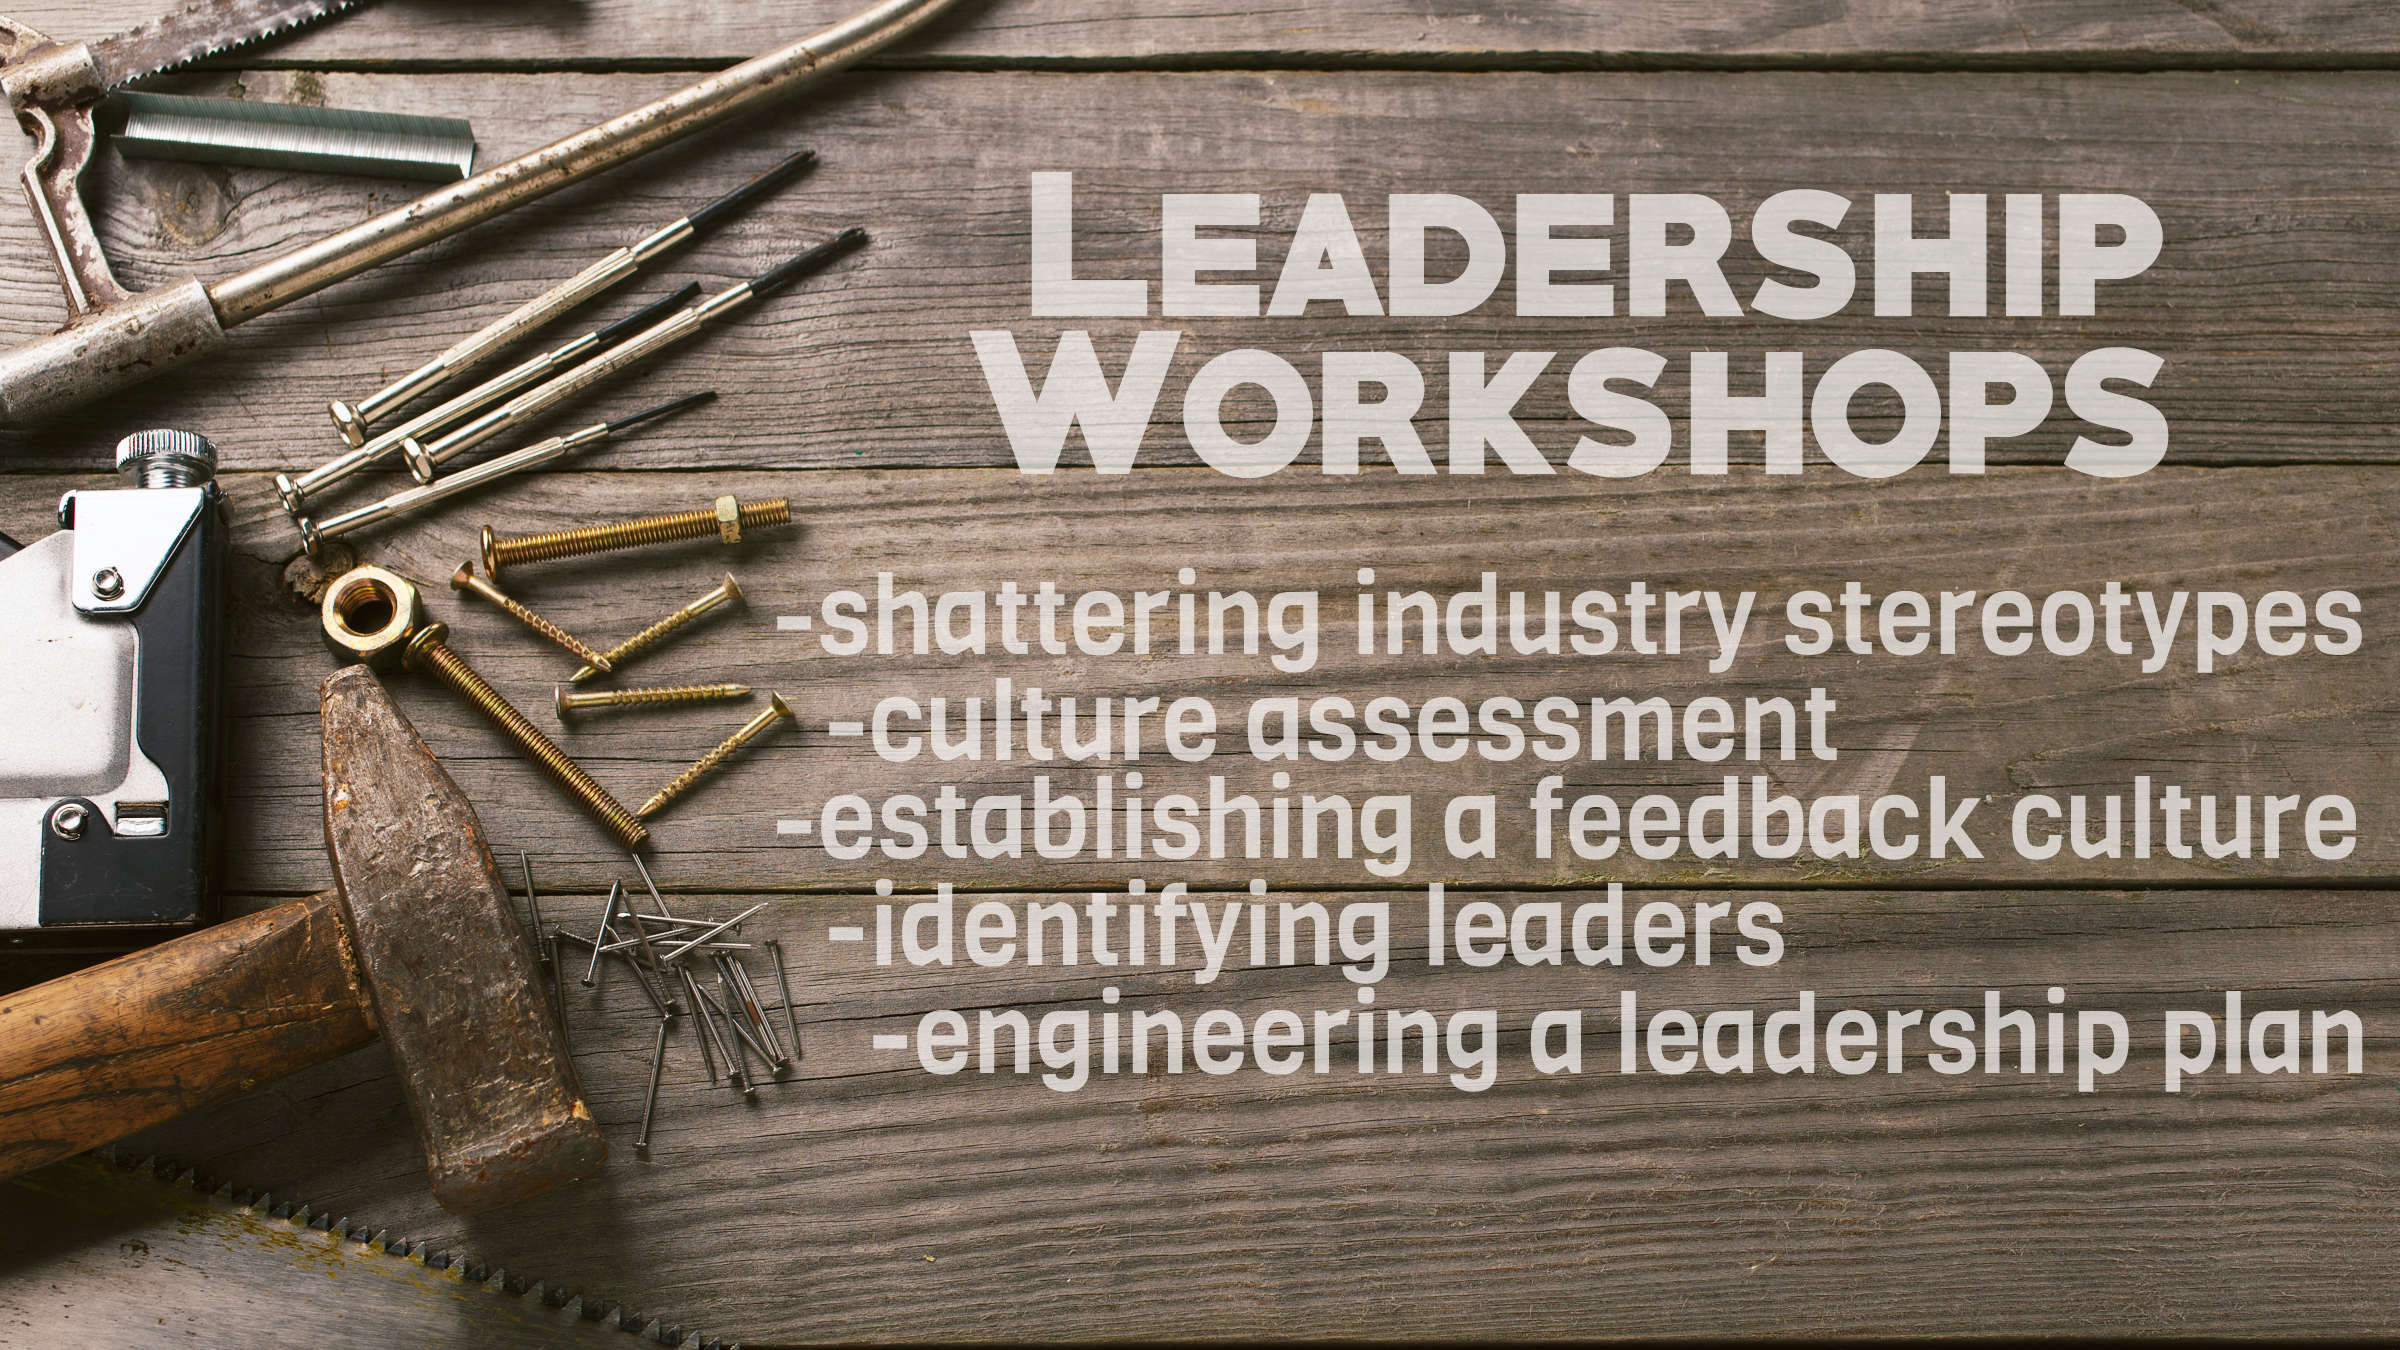 Free lesson on shattering industry stereotypes.